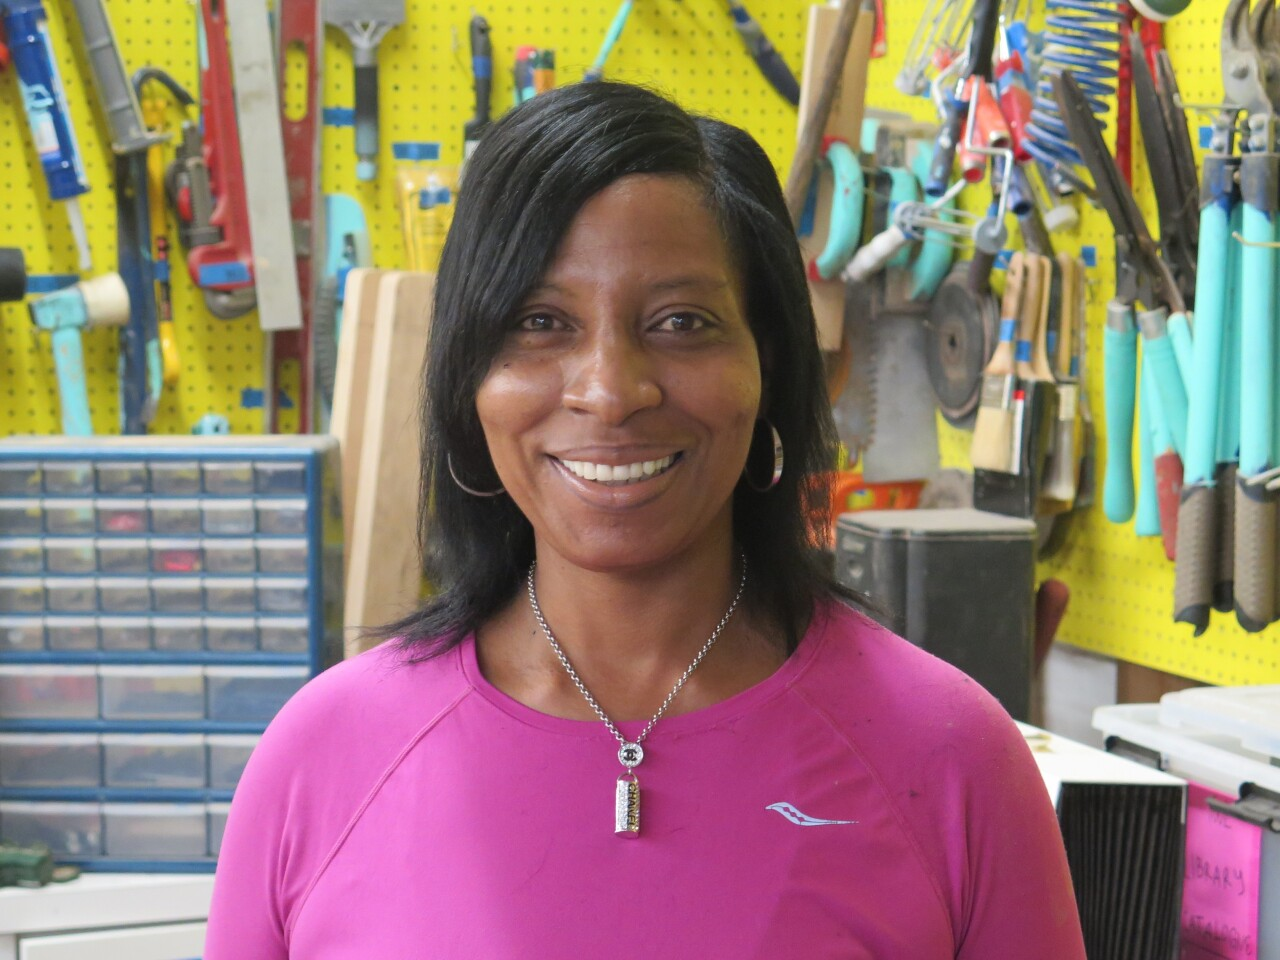 Loretta Davis is smiling in this photo. She has dark, shoulder-length hair and is wearing a bright pink shirt.